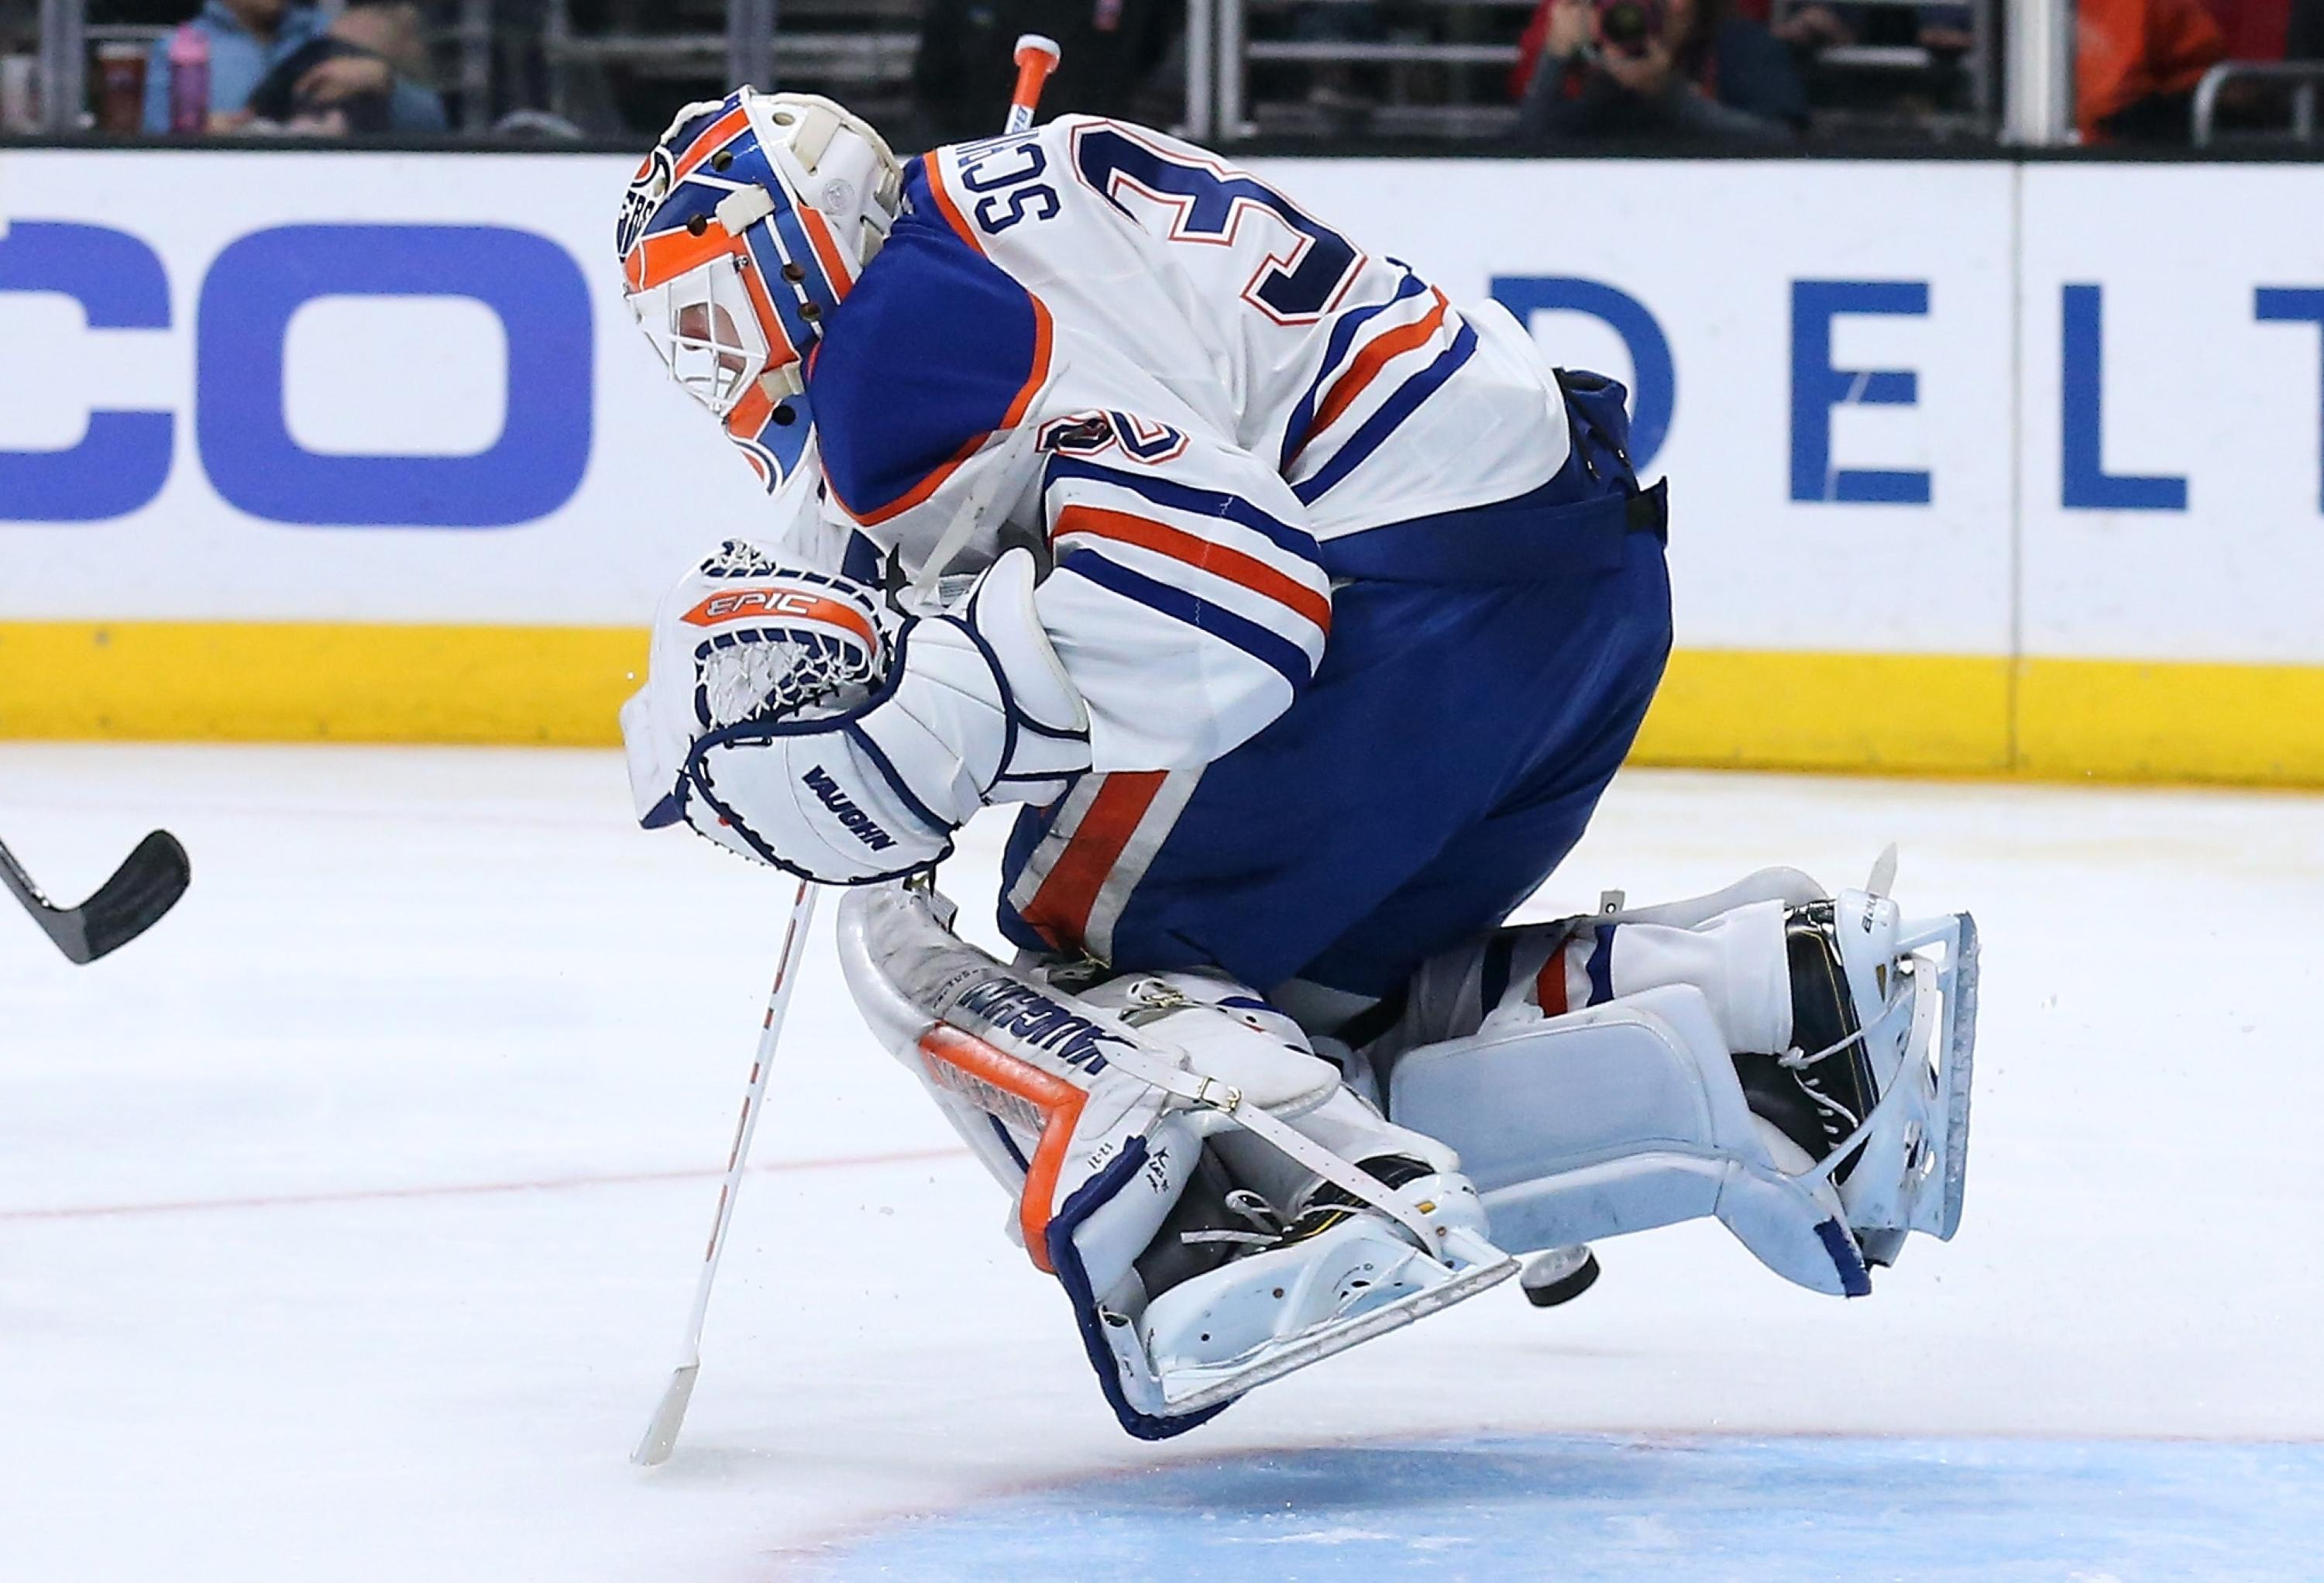 Edmonton Oilers place goaltender Ben Scrivens on waivers